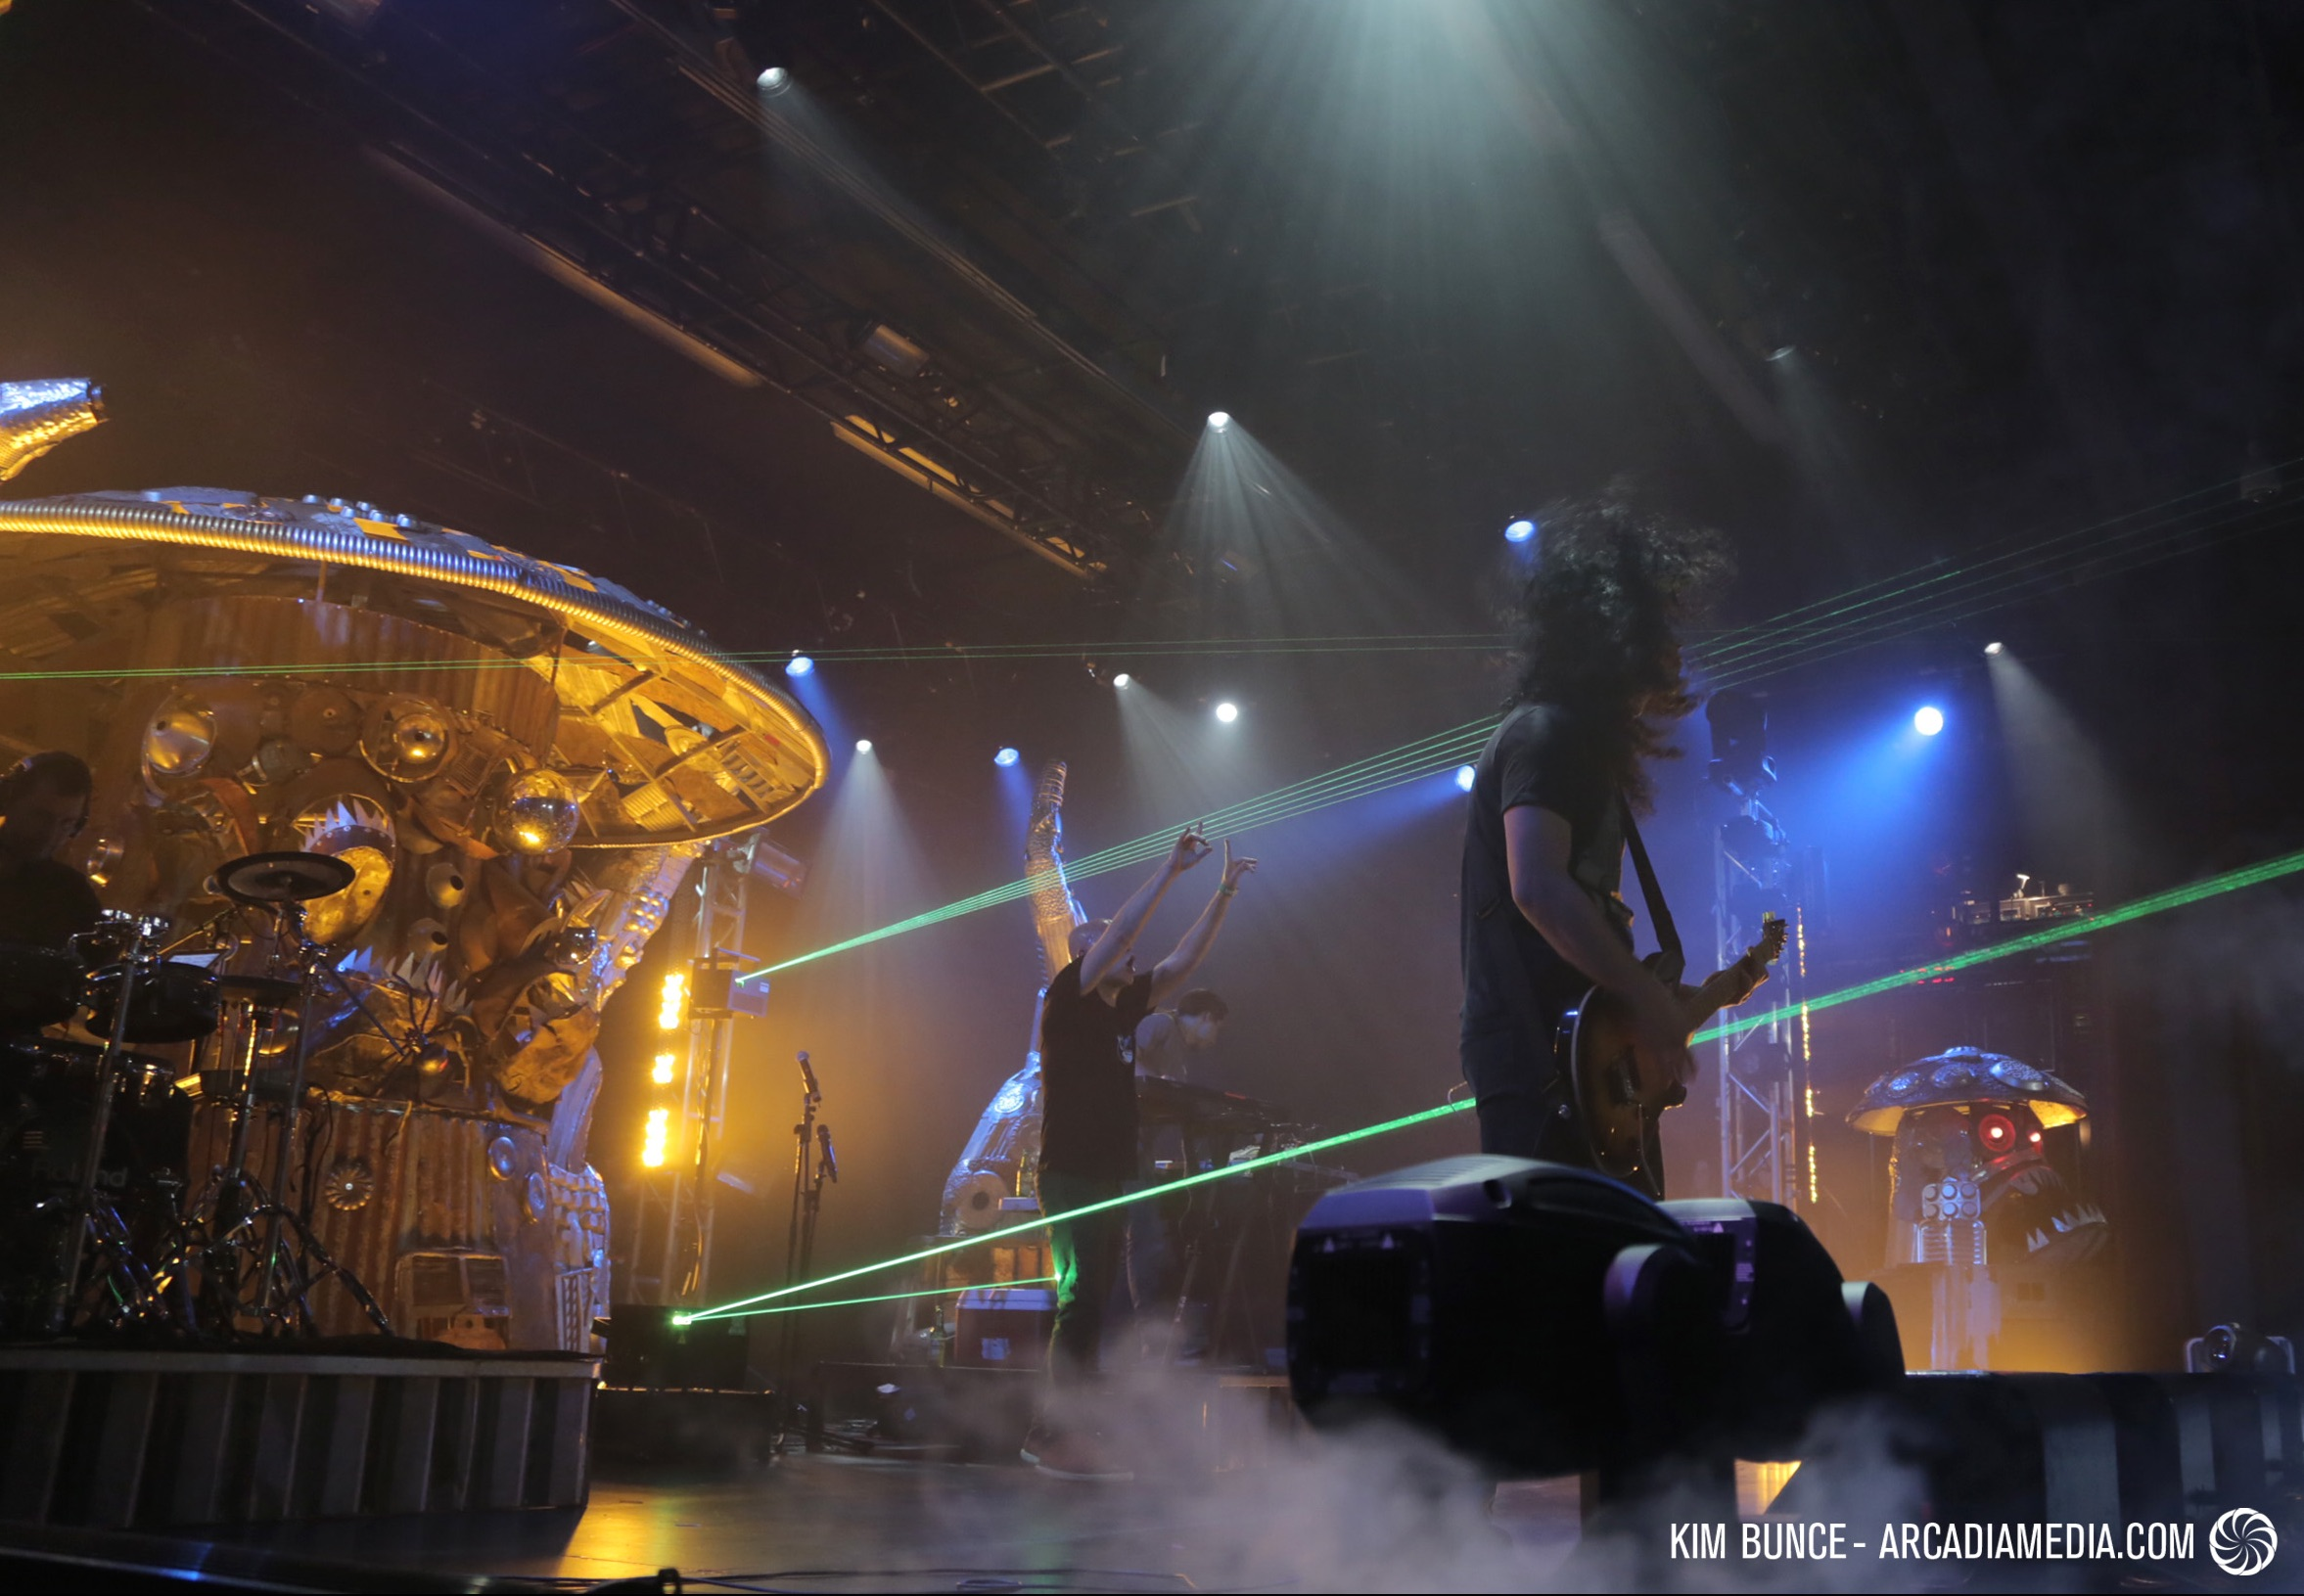 2015-02-27-infectedmushroom.jpg